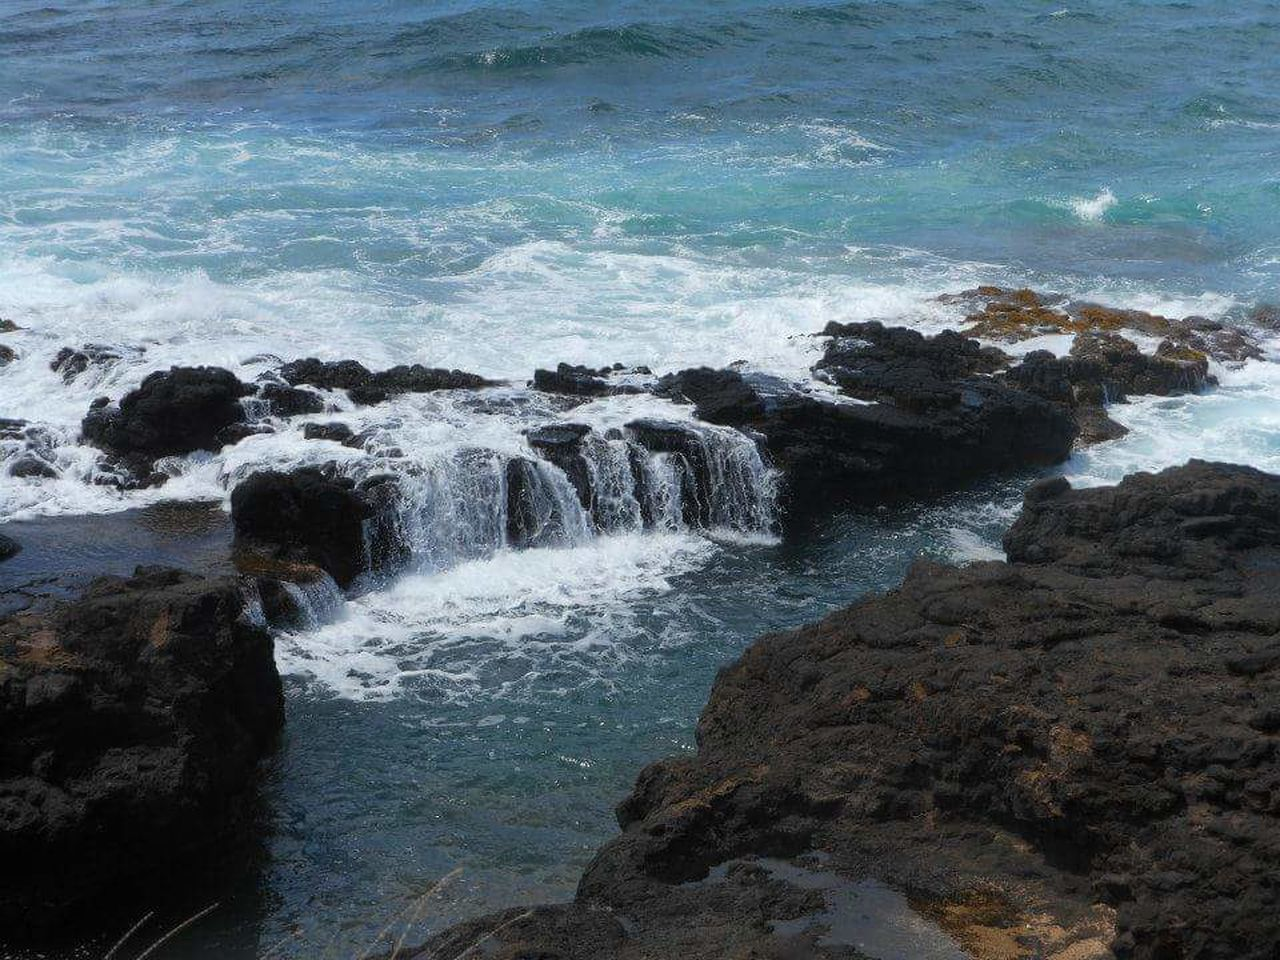 Water Beach Splashing Wave Outdoors Beauty In Nature Sea Scenics Close-up Nature Day Kauai Hawaii Ocean View